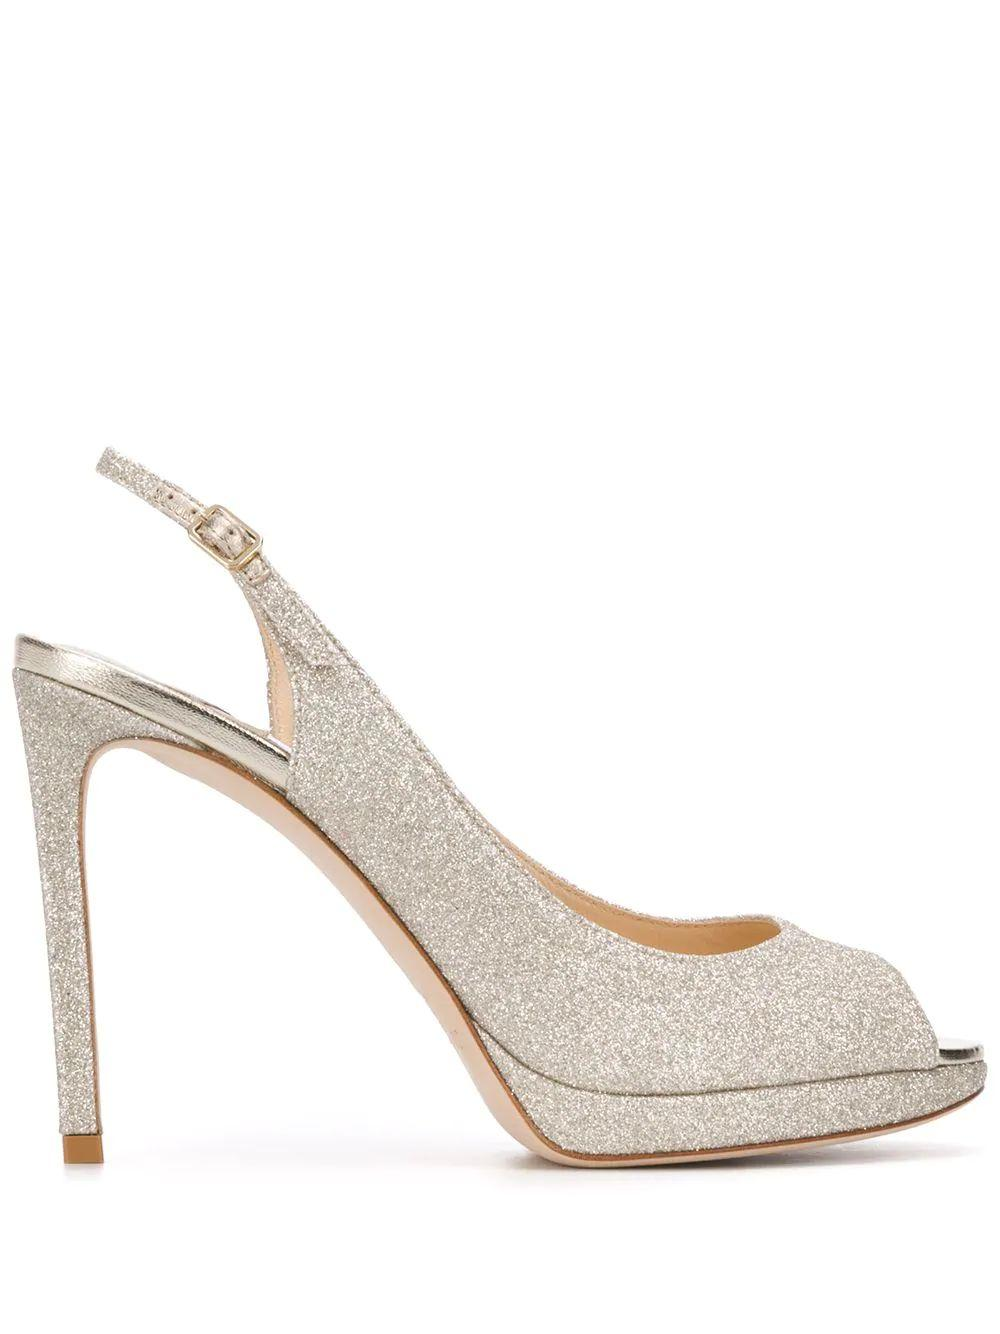 Dusty Glitter 100mm Sling Back Peeptoe Item # NOVA100-DGZ